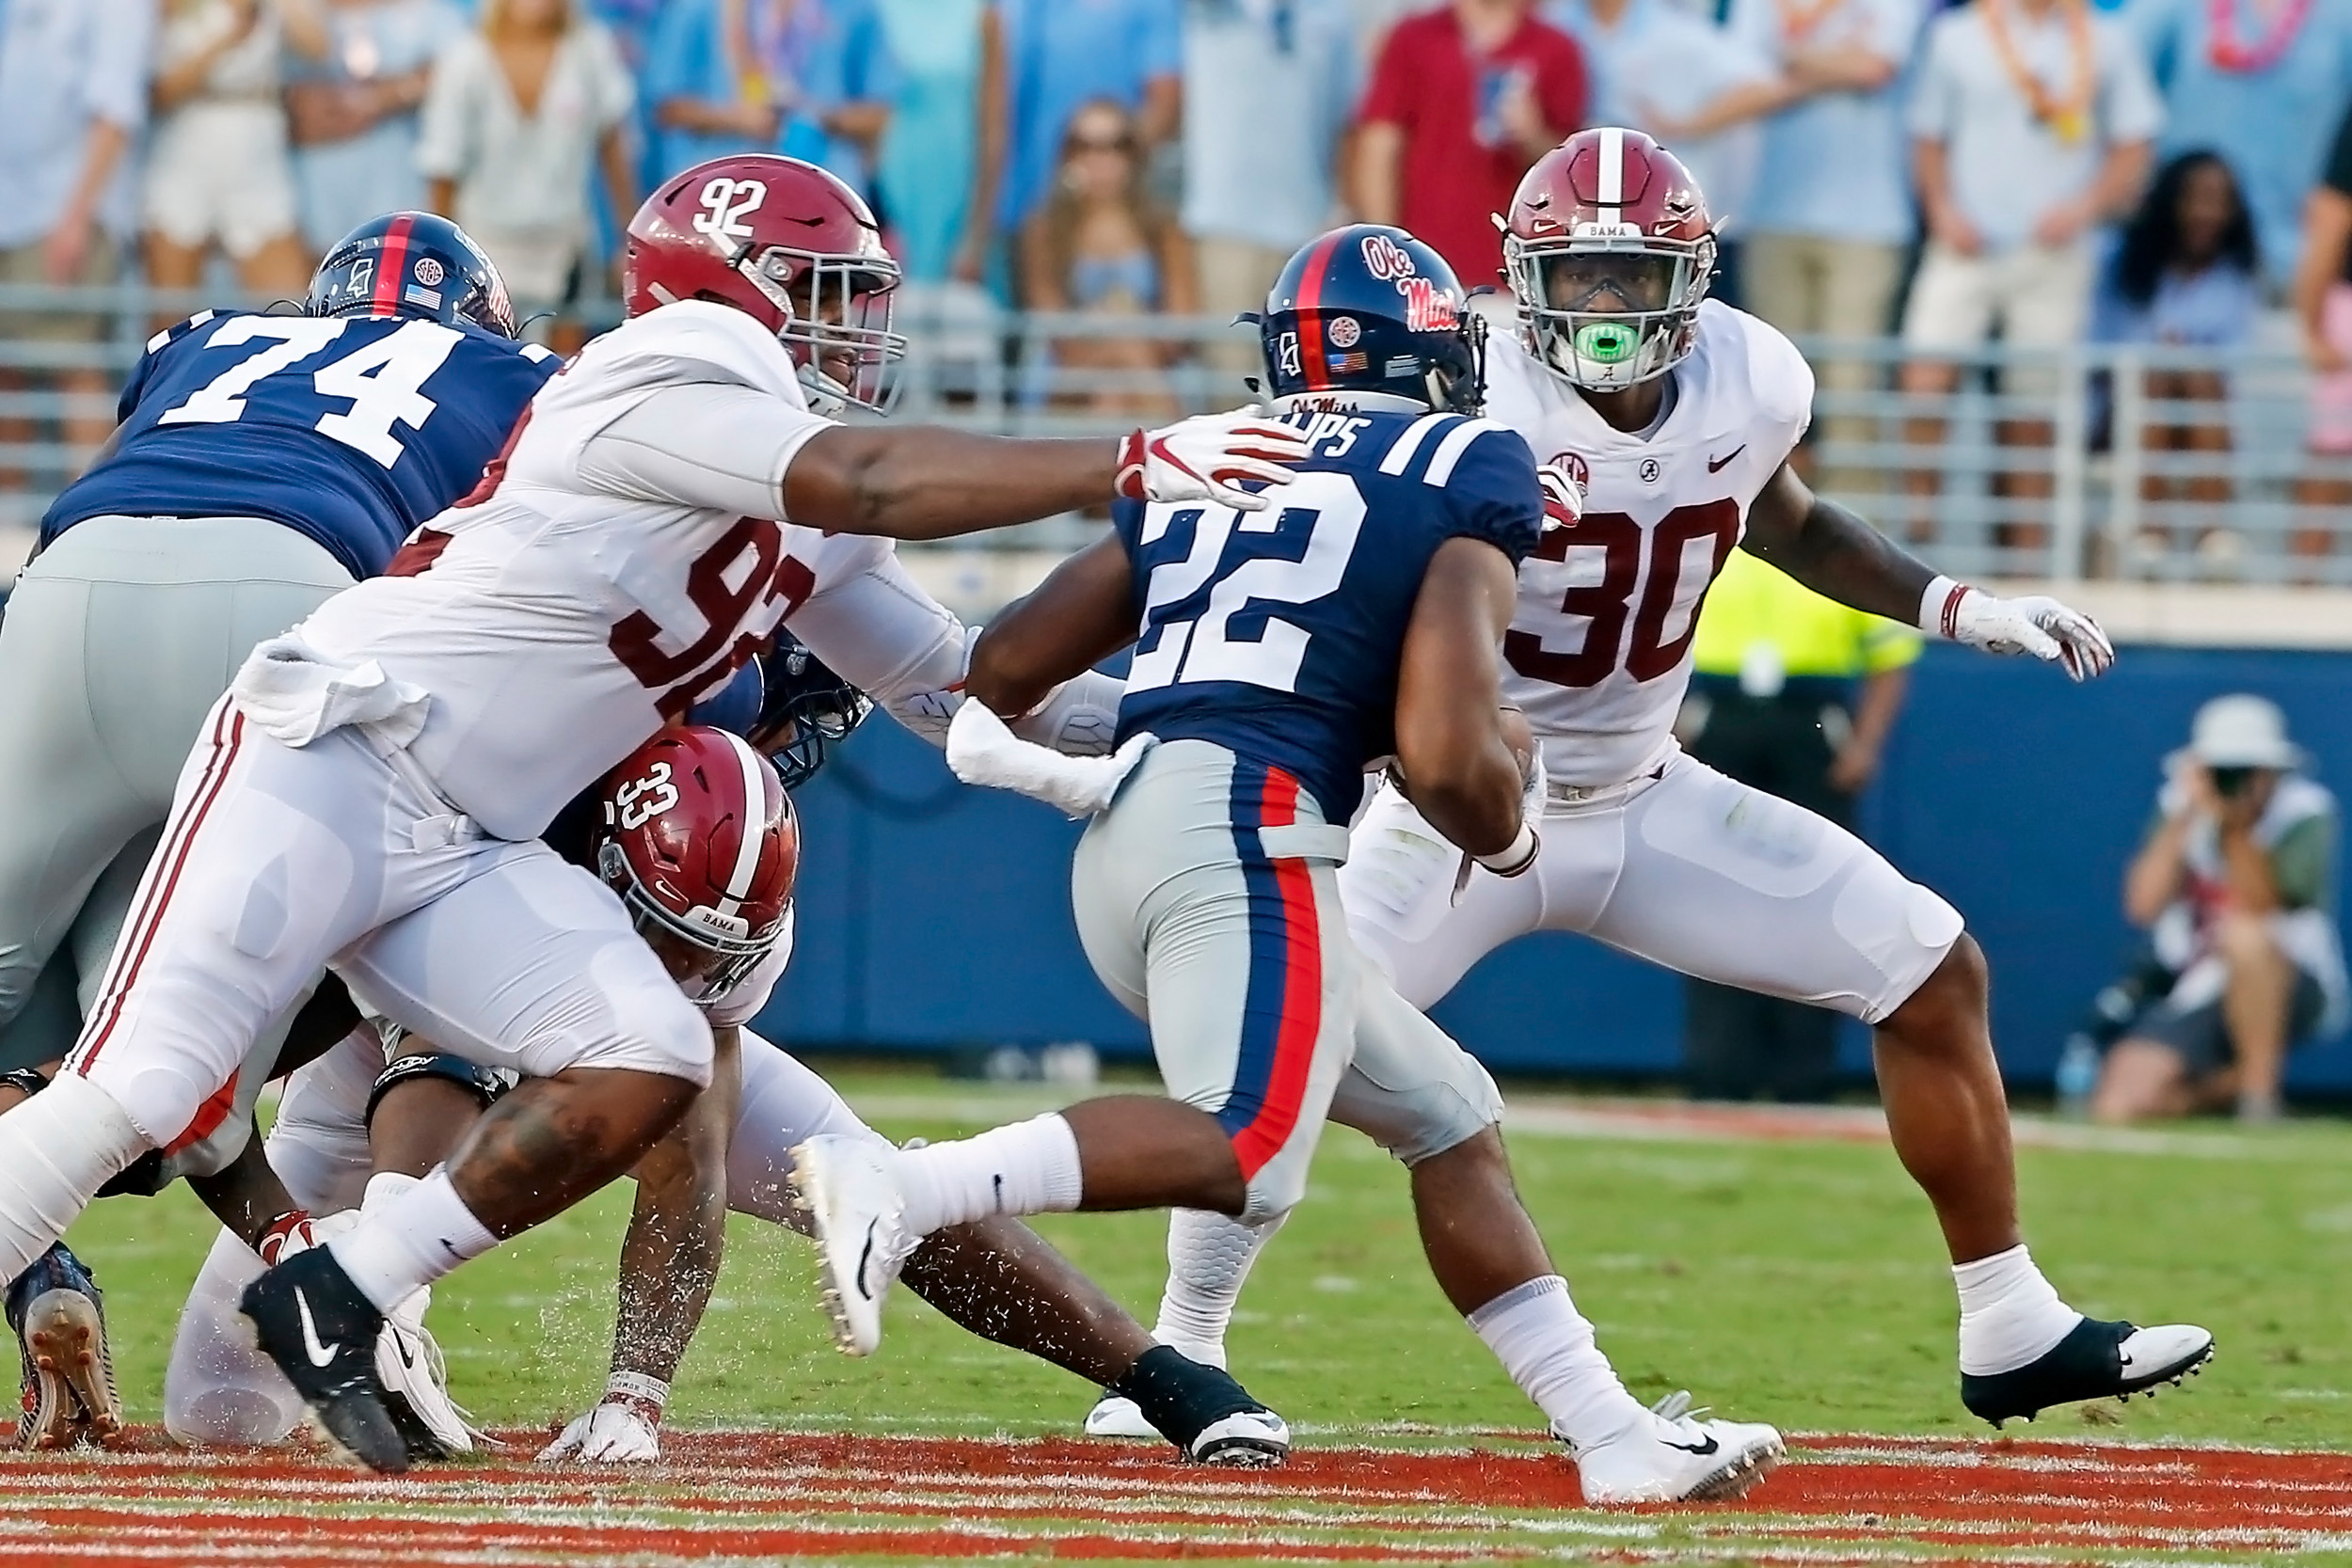 Alabama Crimson Tide defensive lineman Quinnen Williams (92) chases down Mississippi Rebels' running back Scottie Phillips (22) during the game between the University of Alabama and Ole Miss at Vaught-Hemingway Stadium. Jason Clark / Daily Mountain Eagle